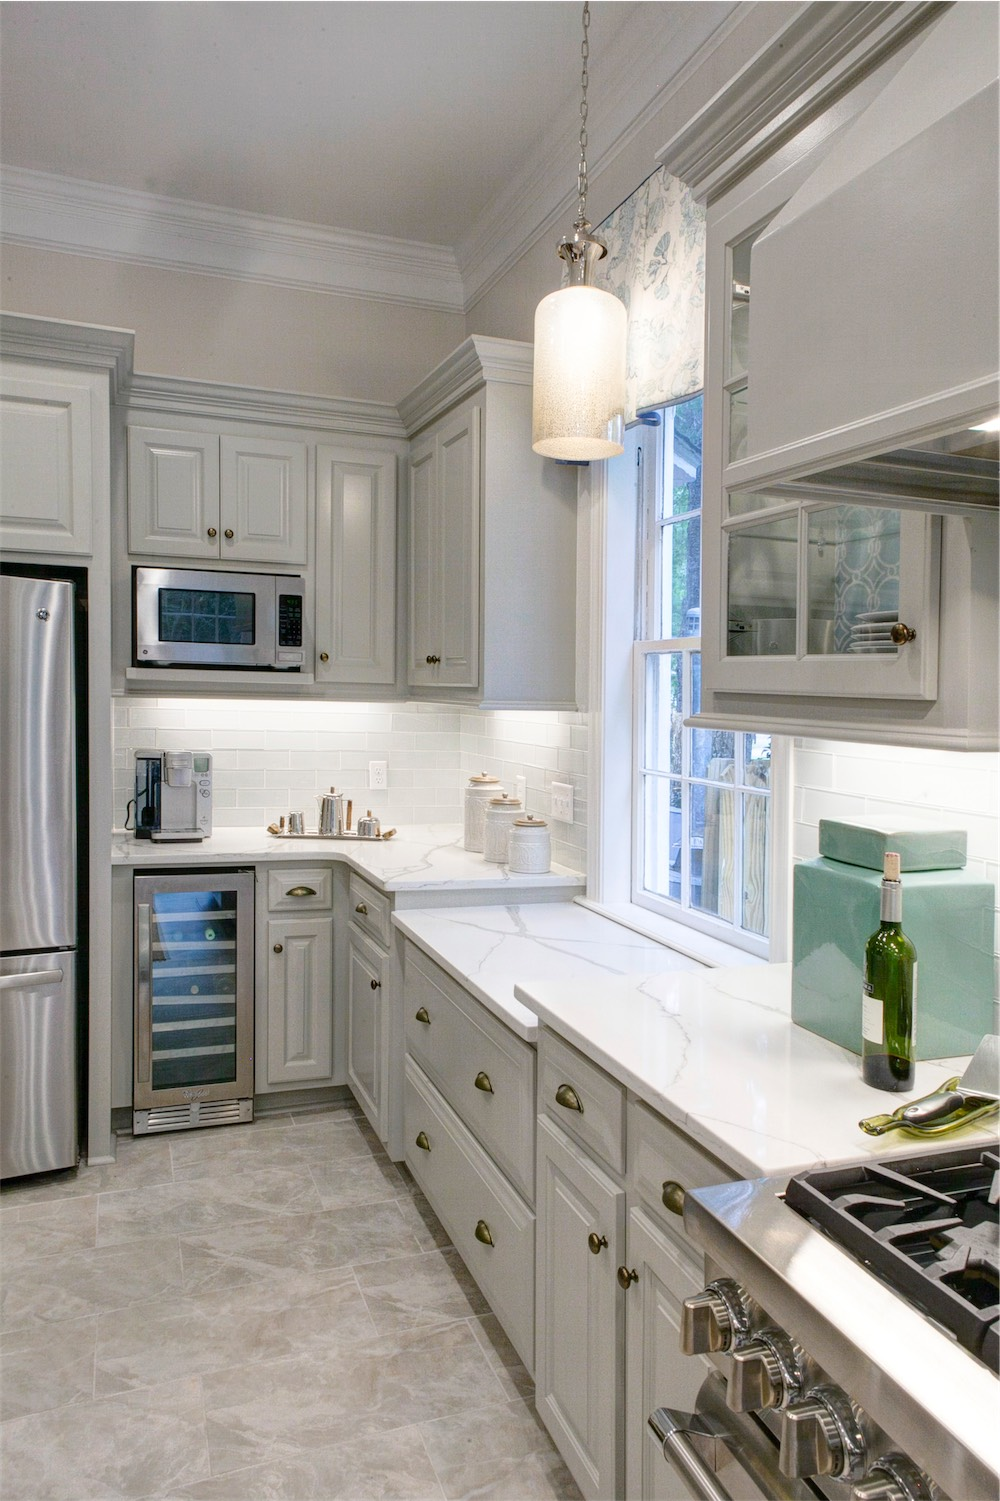 calhoun_kitchen_05202016_010.jpg